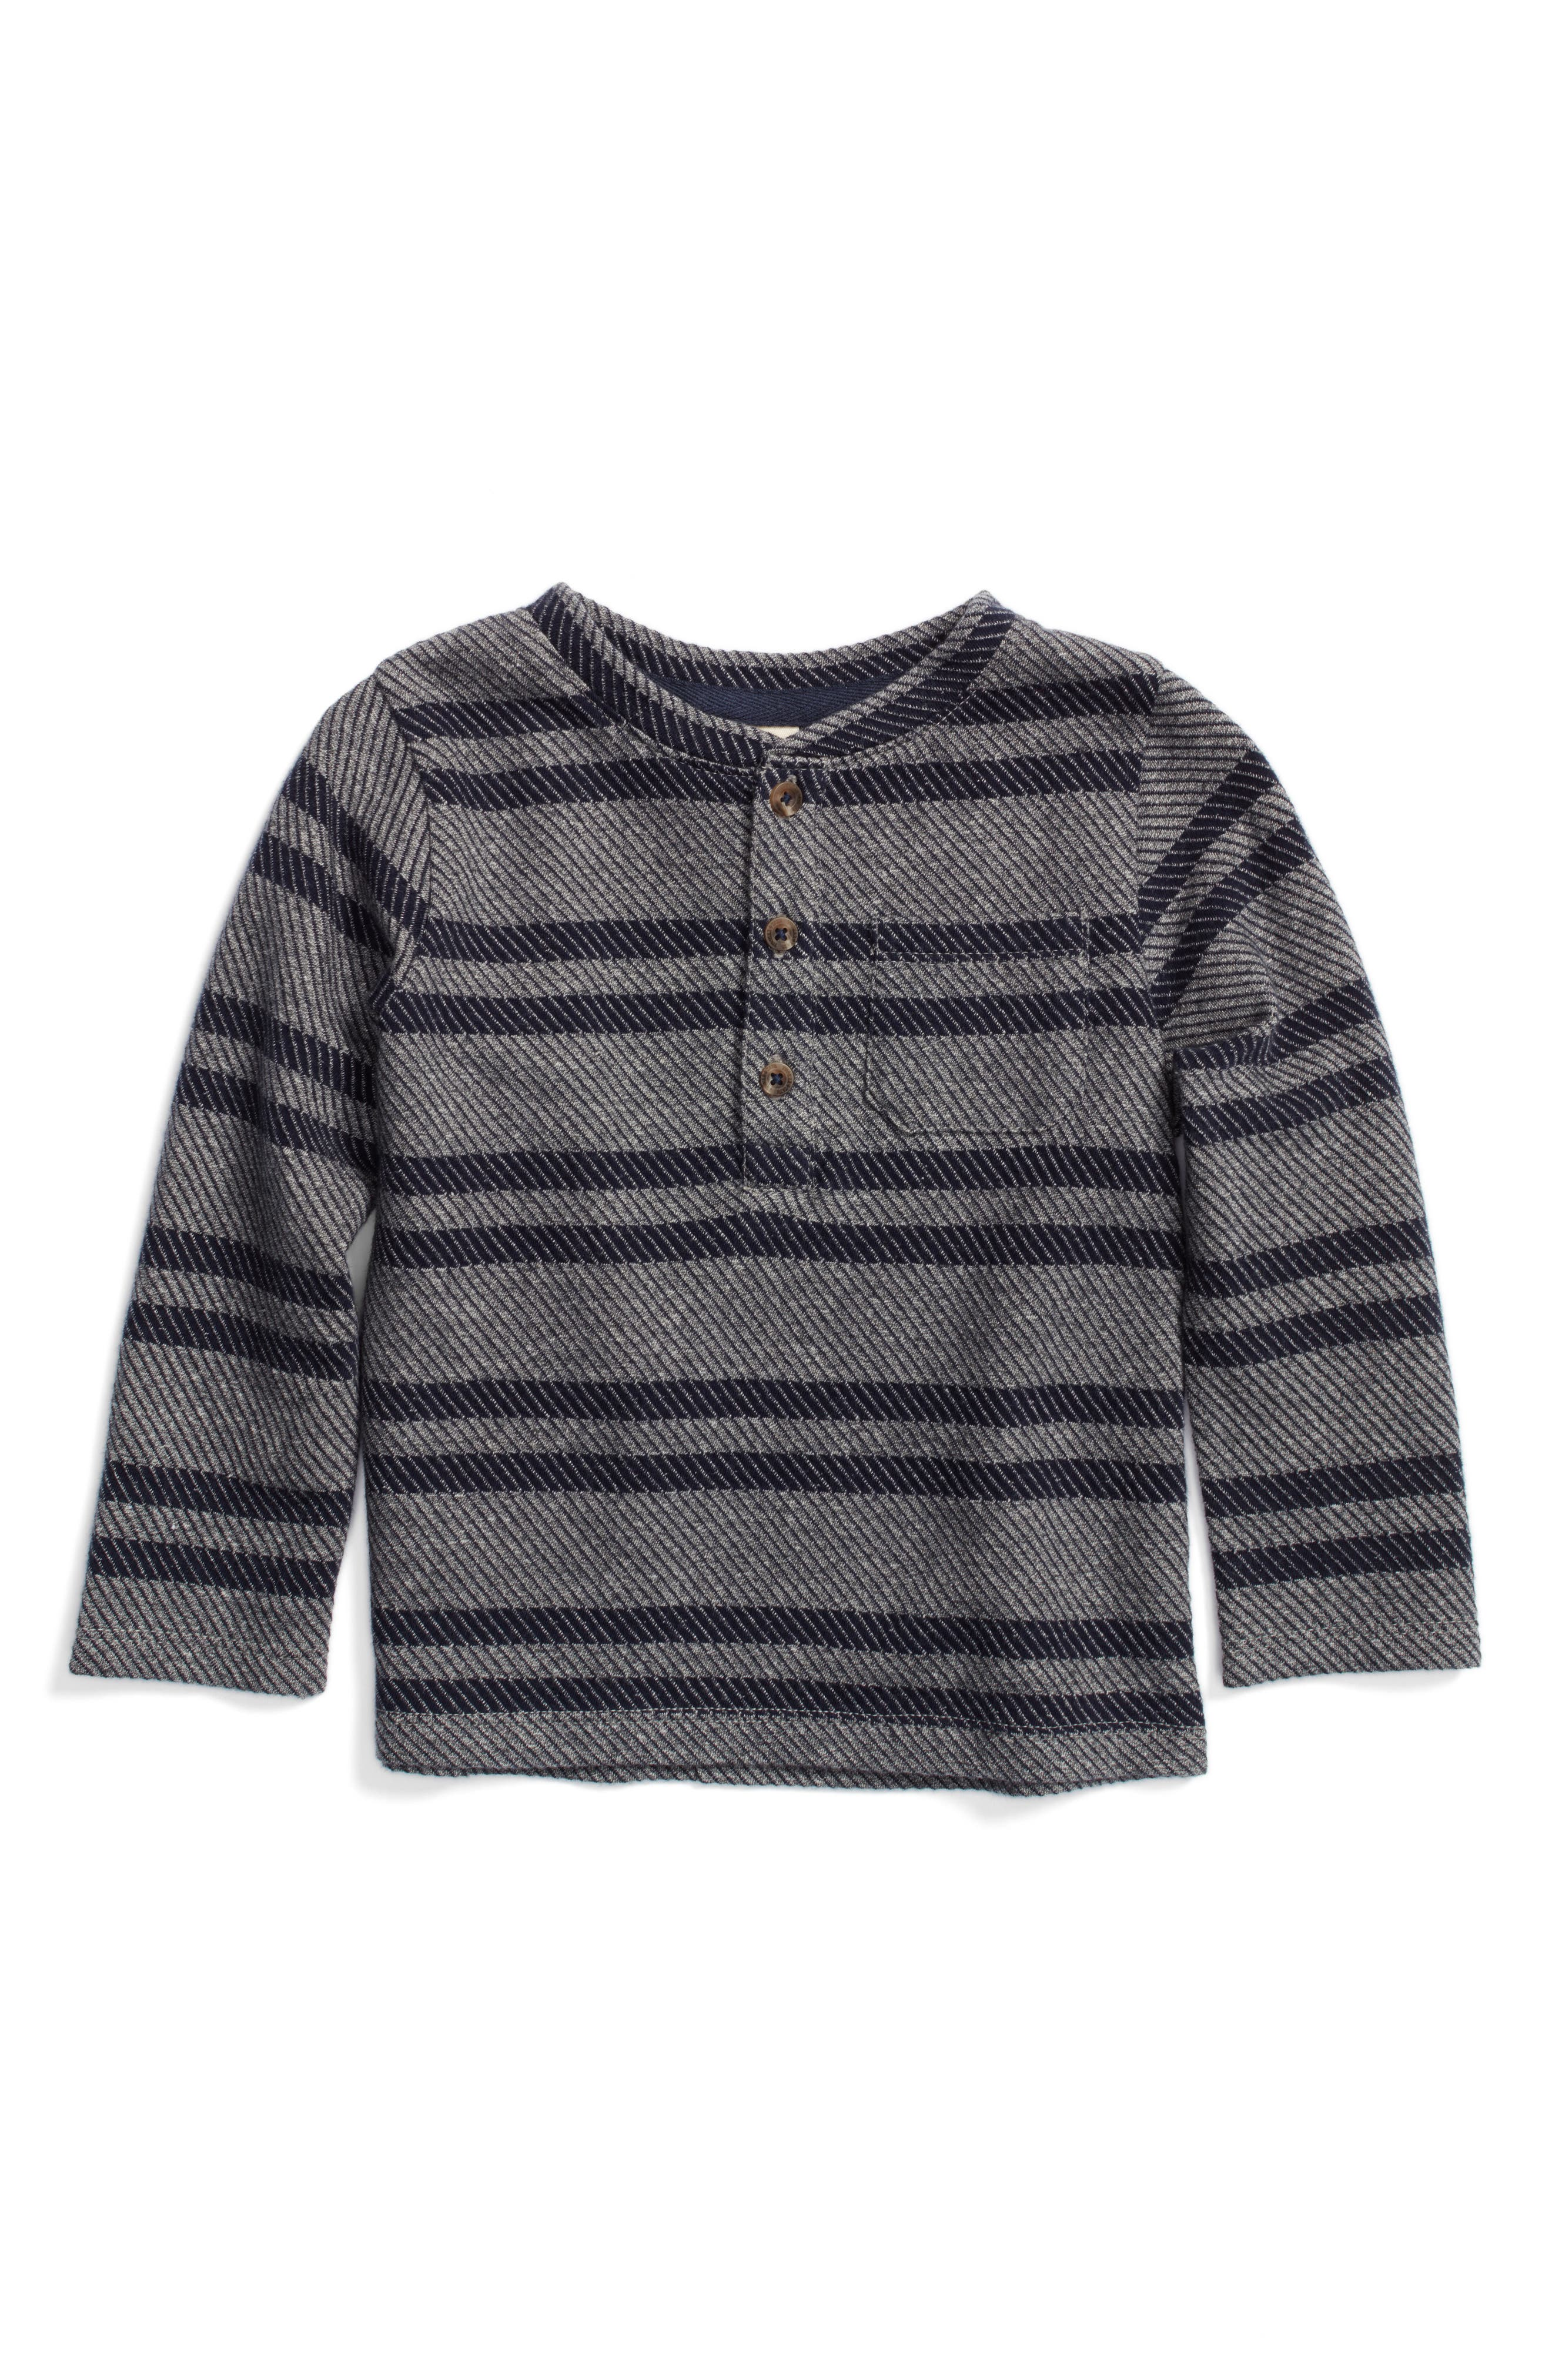 Alternate Image 1 Selected - Tucker + Tate Twill Stripe Henley T-Shirt (Baby Boys)